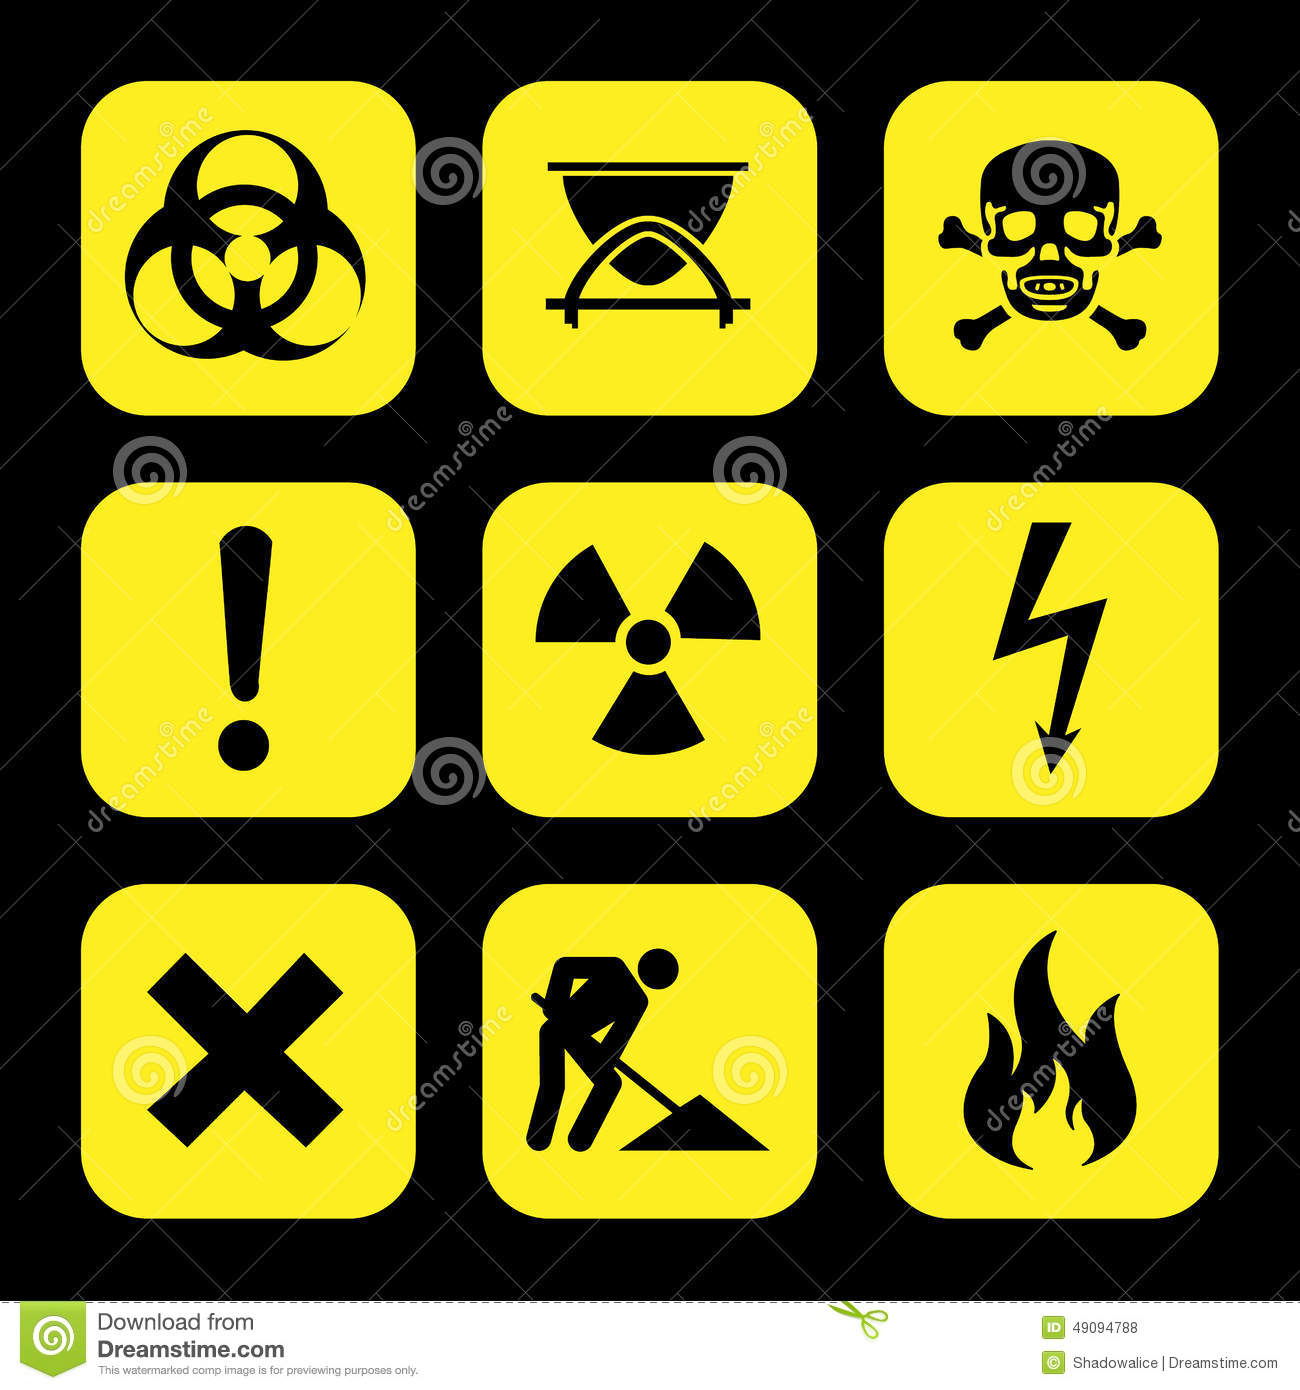 Laboratory safety symbols stock vector illustration of biohazard symbols warning hazard icons set great for any use vector eps10 royalty free stock buycottarizona Image collections